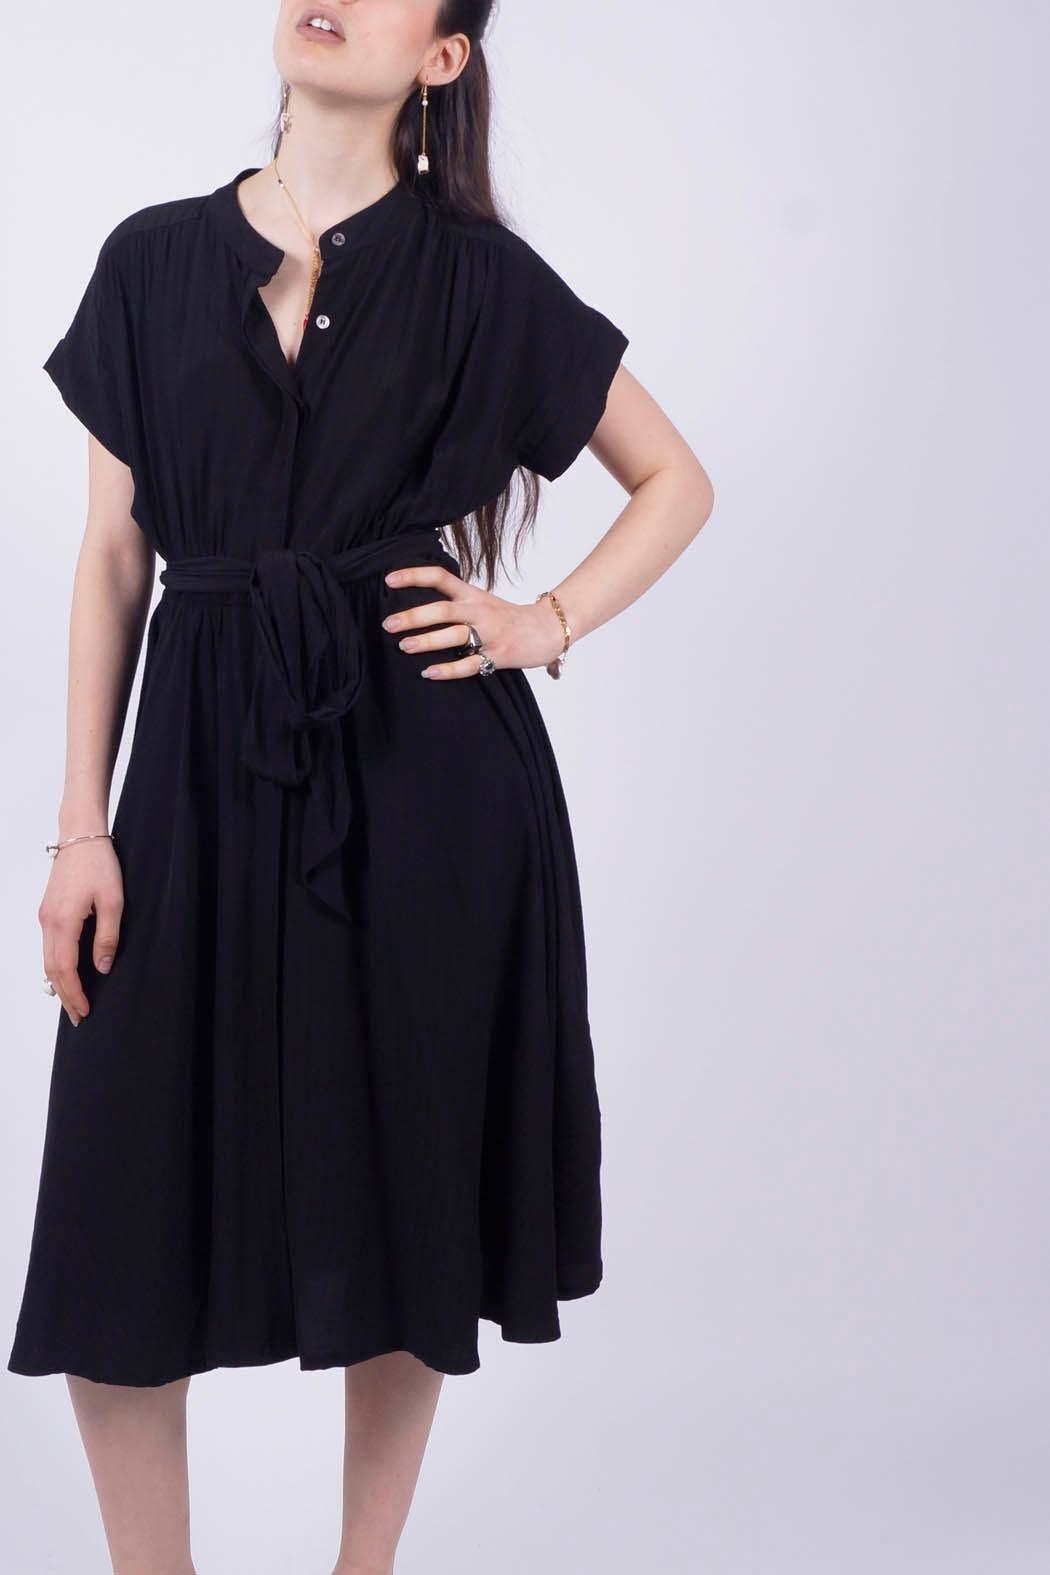 NU New York Black Shirt Dress - Side Cropped Image